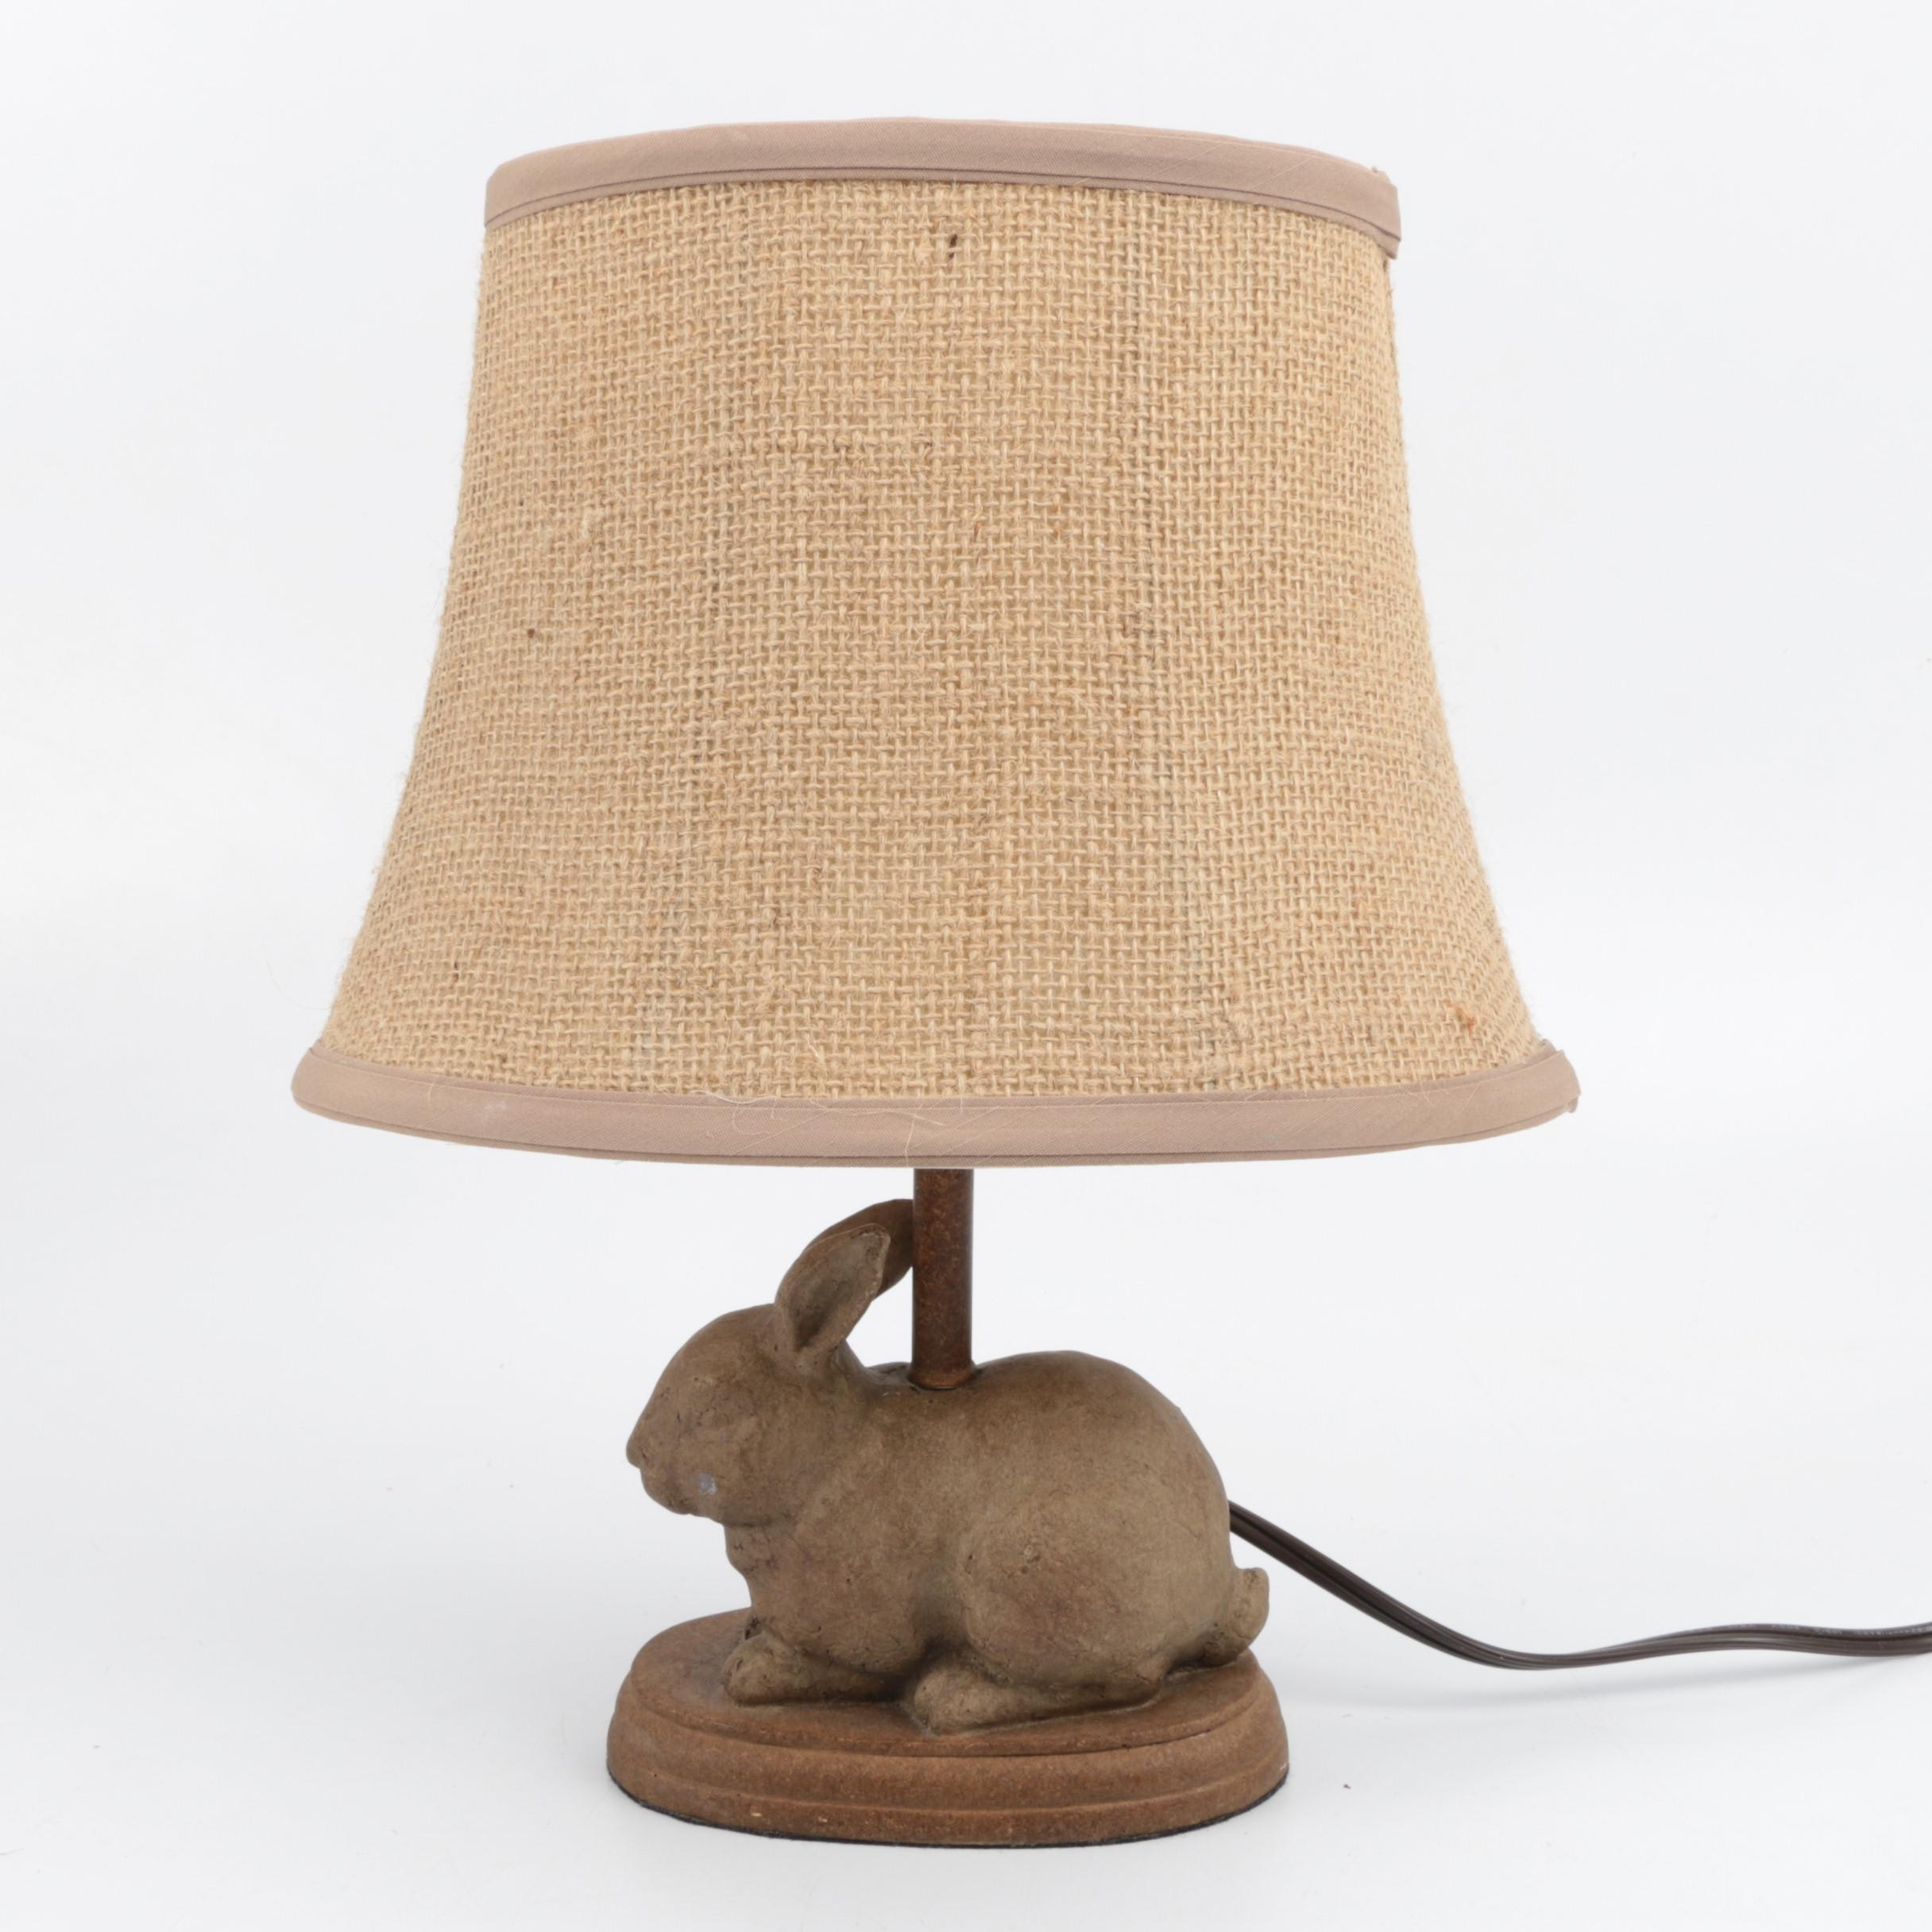 Figural Table Lamp with Rabbit Figure